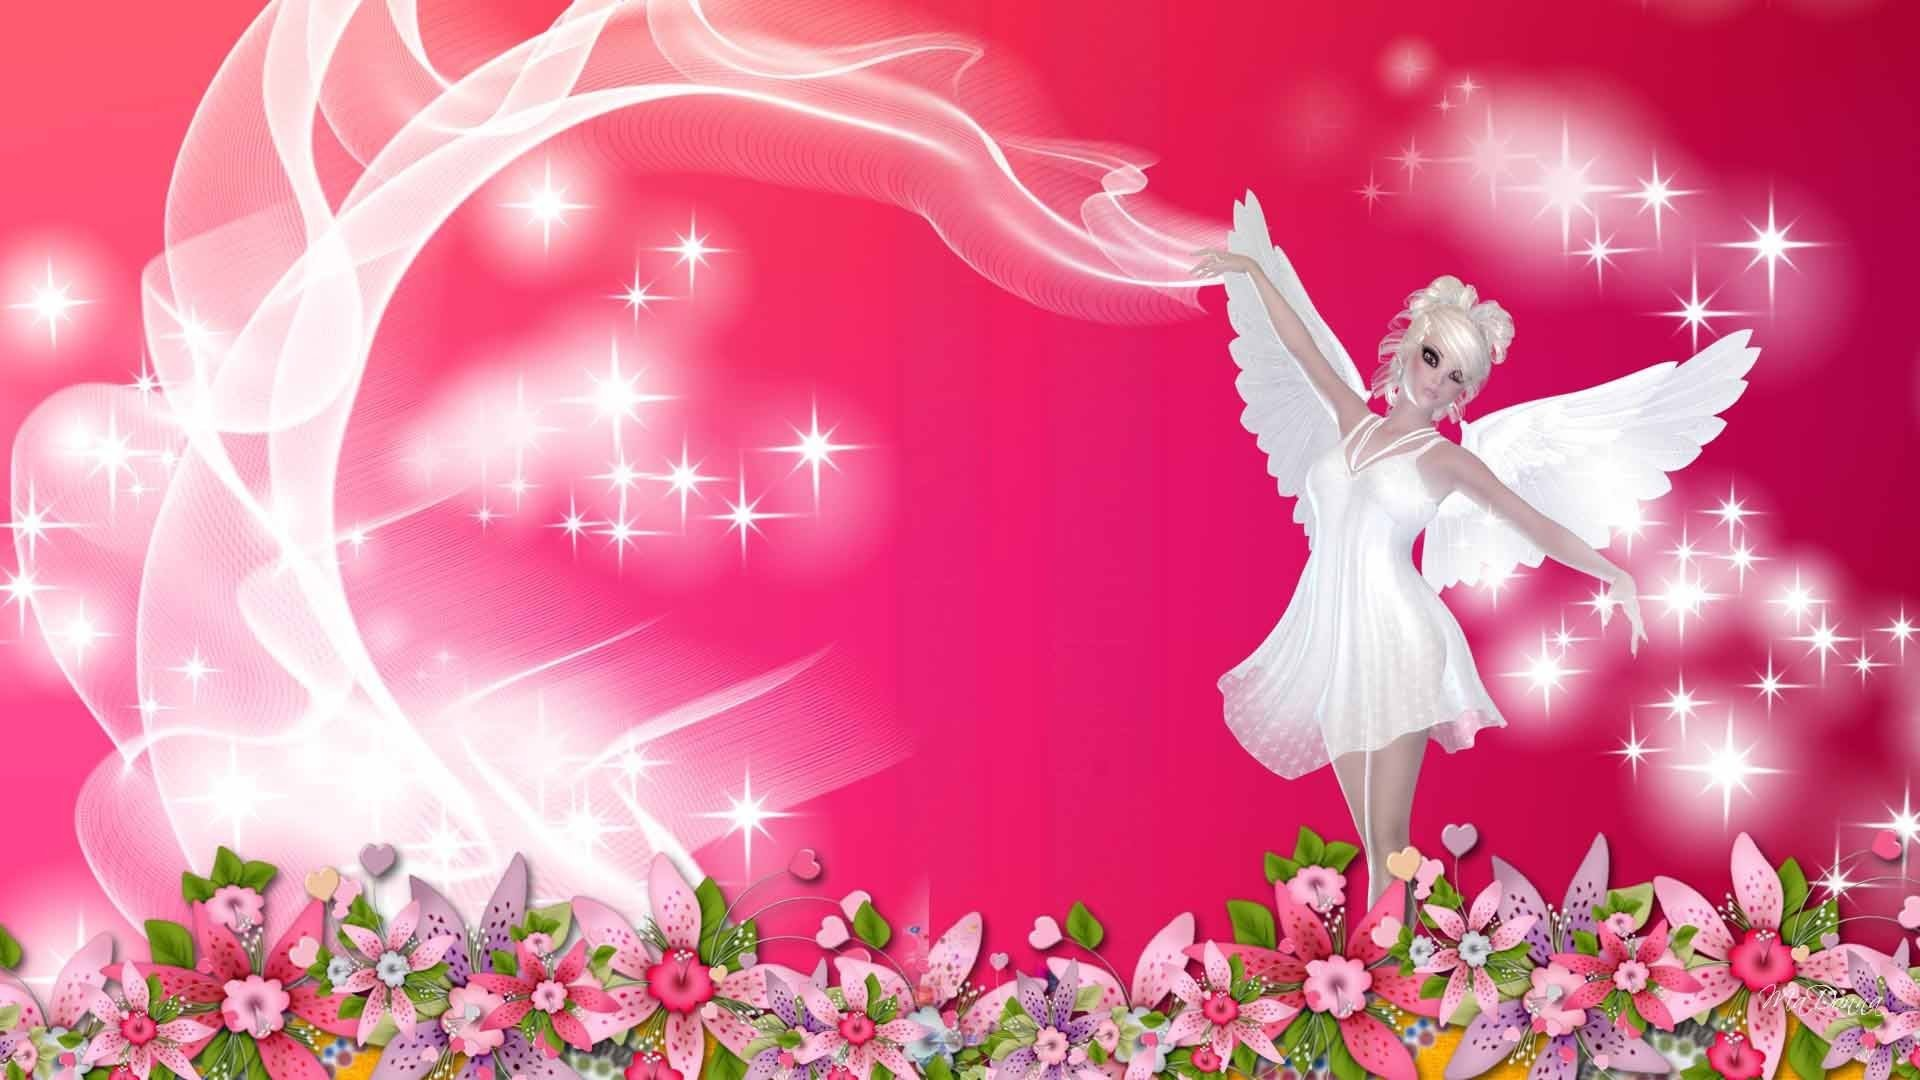 Res: 1920x1080, pink fairy